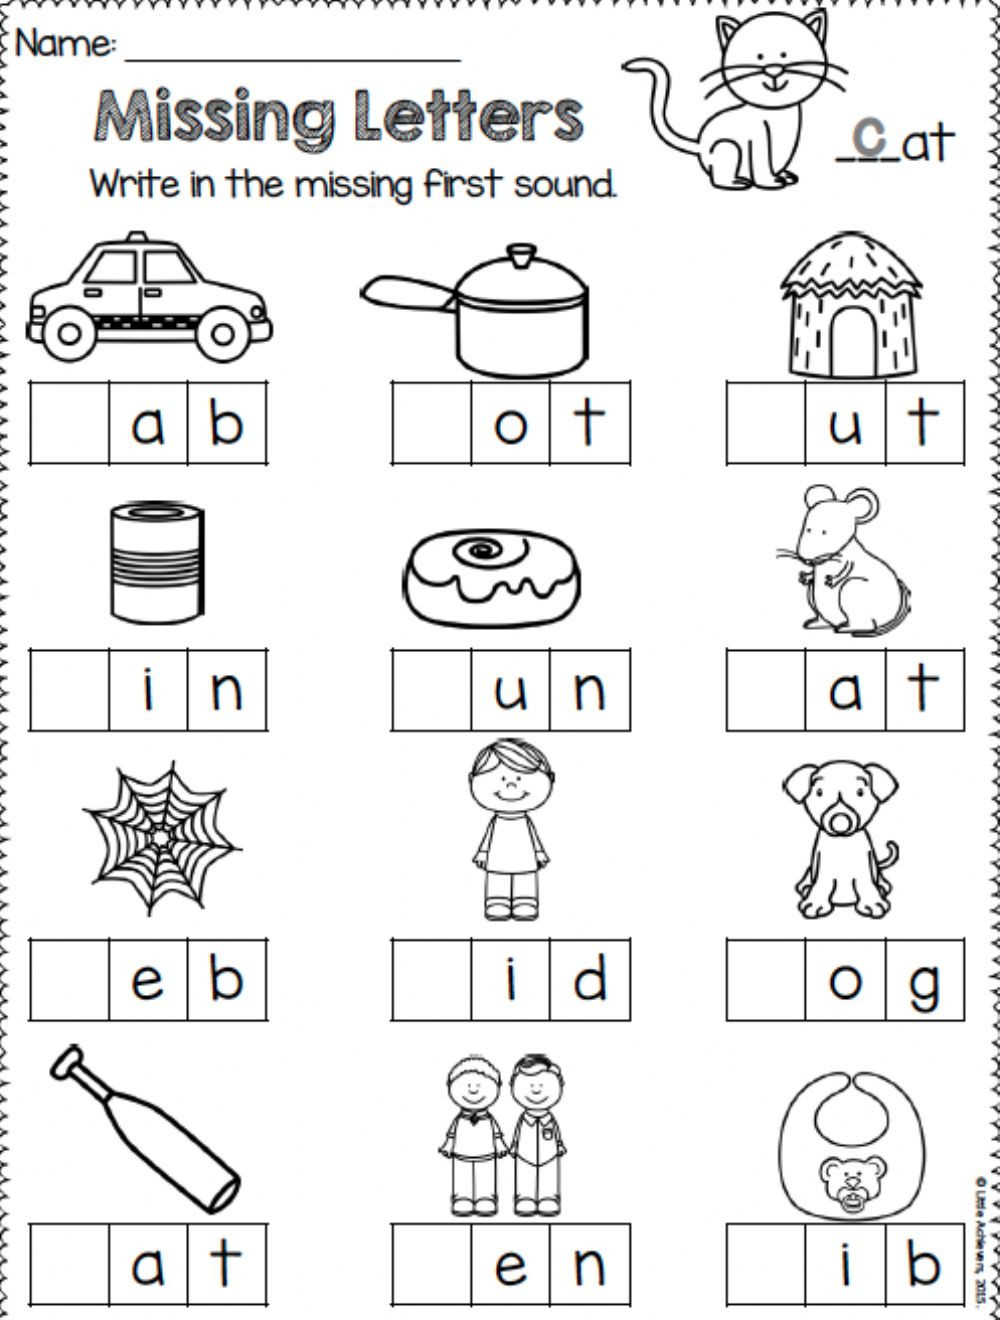 Missing Letters Alphabet Worksheet Missing Letters Activity